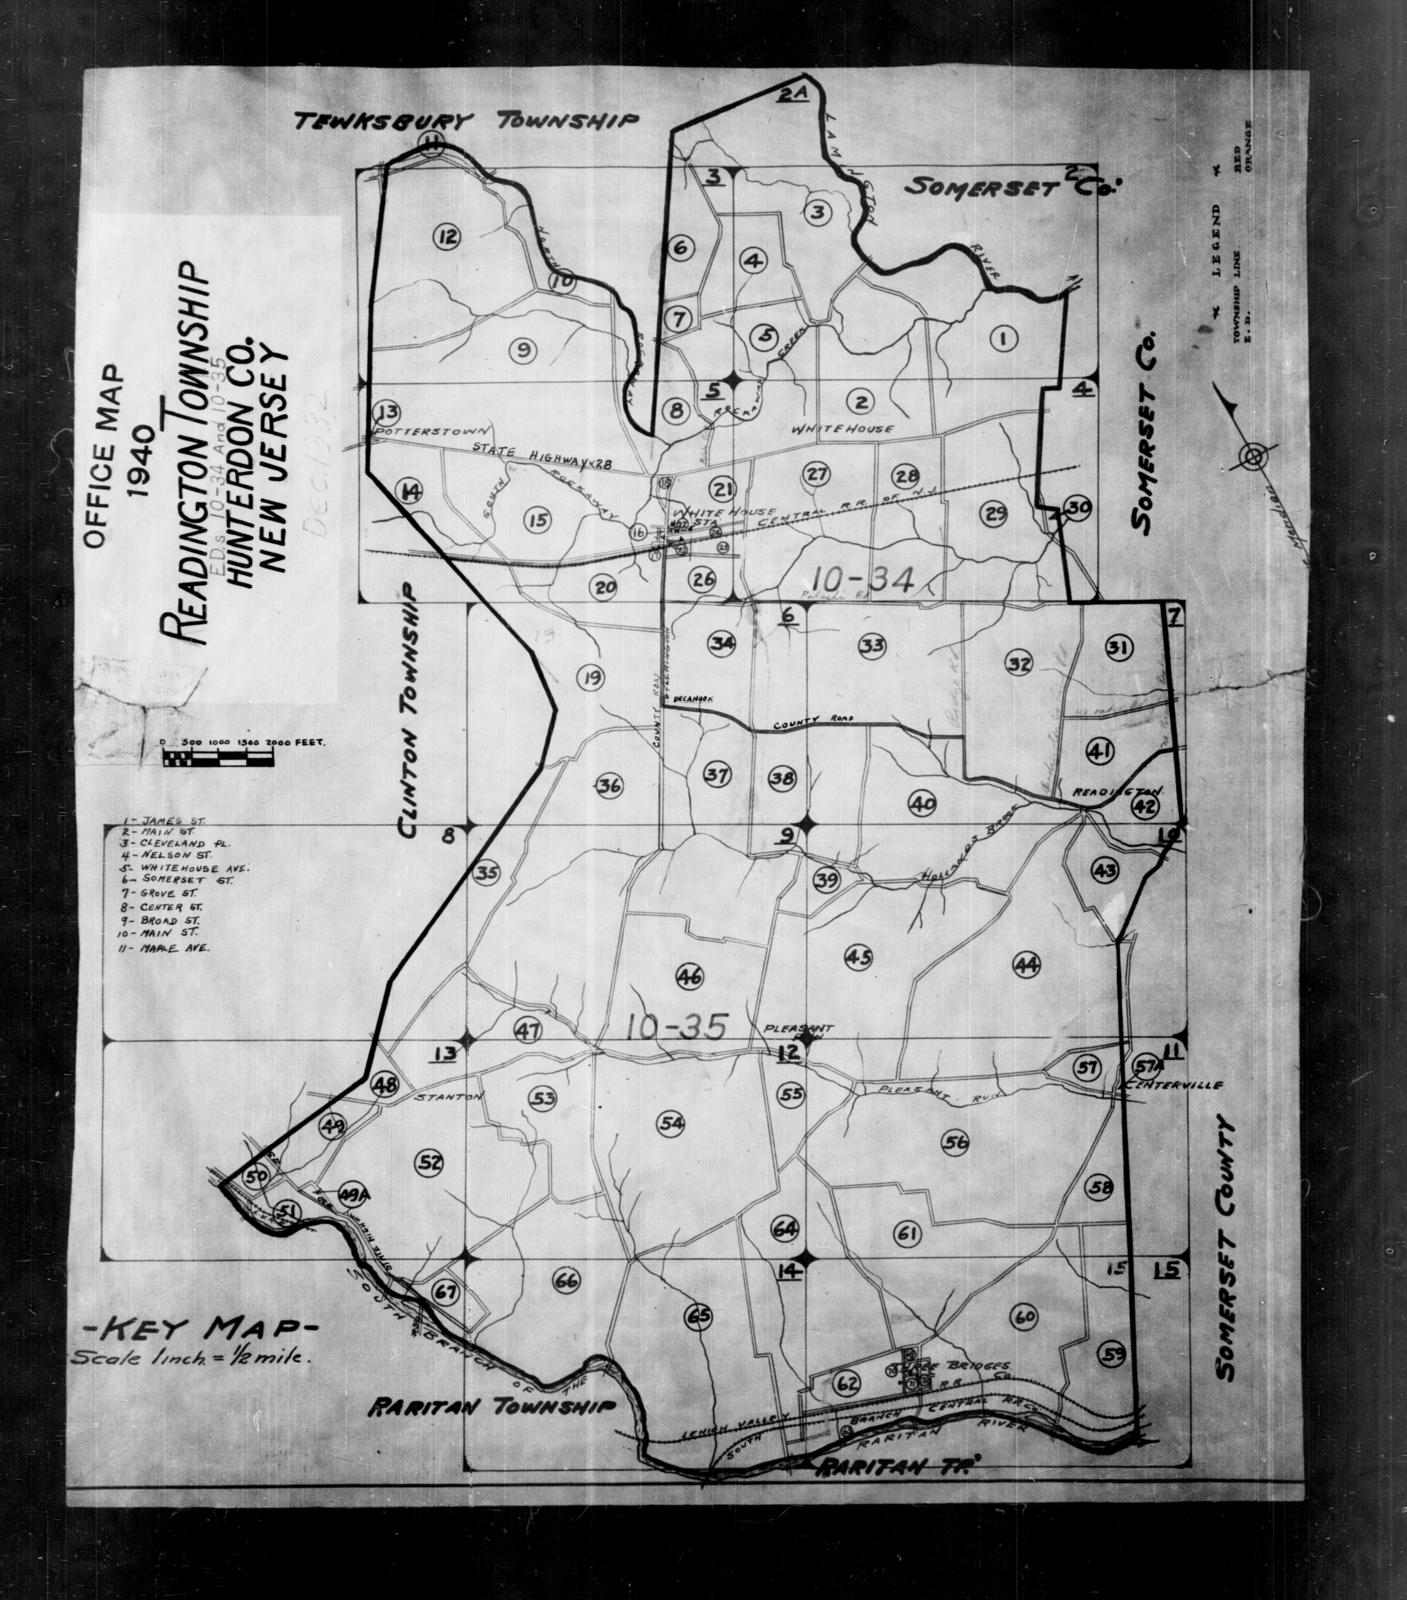 1940 Census Enumeration District Maps - New Jersey ... on camden county, map of colonia, map of bethlehem township, map of white township, map of springfield township, sussex county, burlington county, map of upper bucks, monmouth county, nassau county, map of hoboken, map of marlboro, map of roselle, passaic county, new jersey hunterdon county, map of fairview, somerset county, map of point breeze, map of pemberton township, ocean county, map of summit, bucks county, cumberland county, middlesex county, morris county, atlantic county, warren county, mercer county, map of haledon, map of washington township, bergen county, map of middlesex, union county, map of new providence, map of red bank, map of elmwood park, map of trenton, essex county, hudson county,